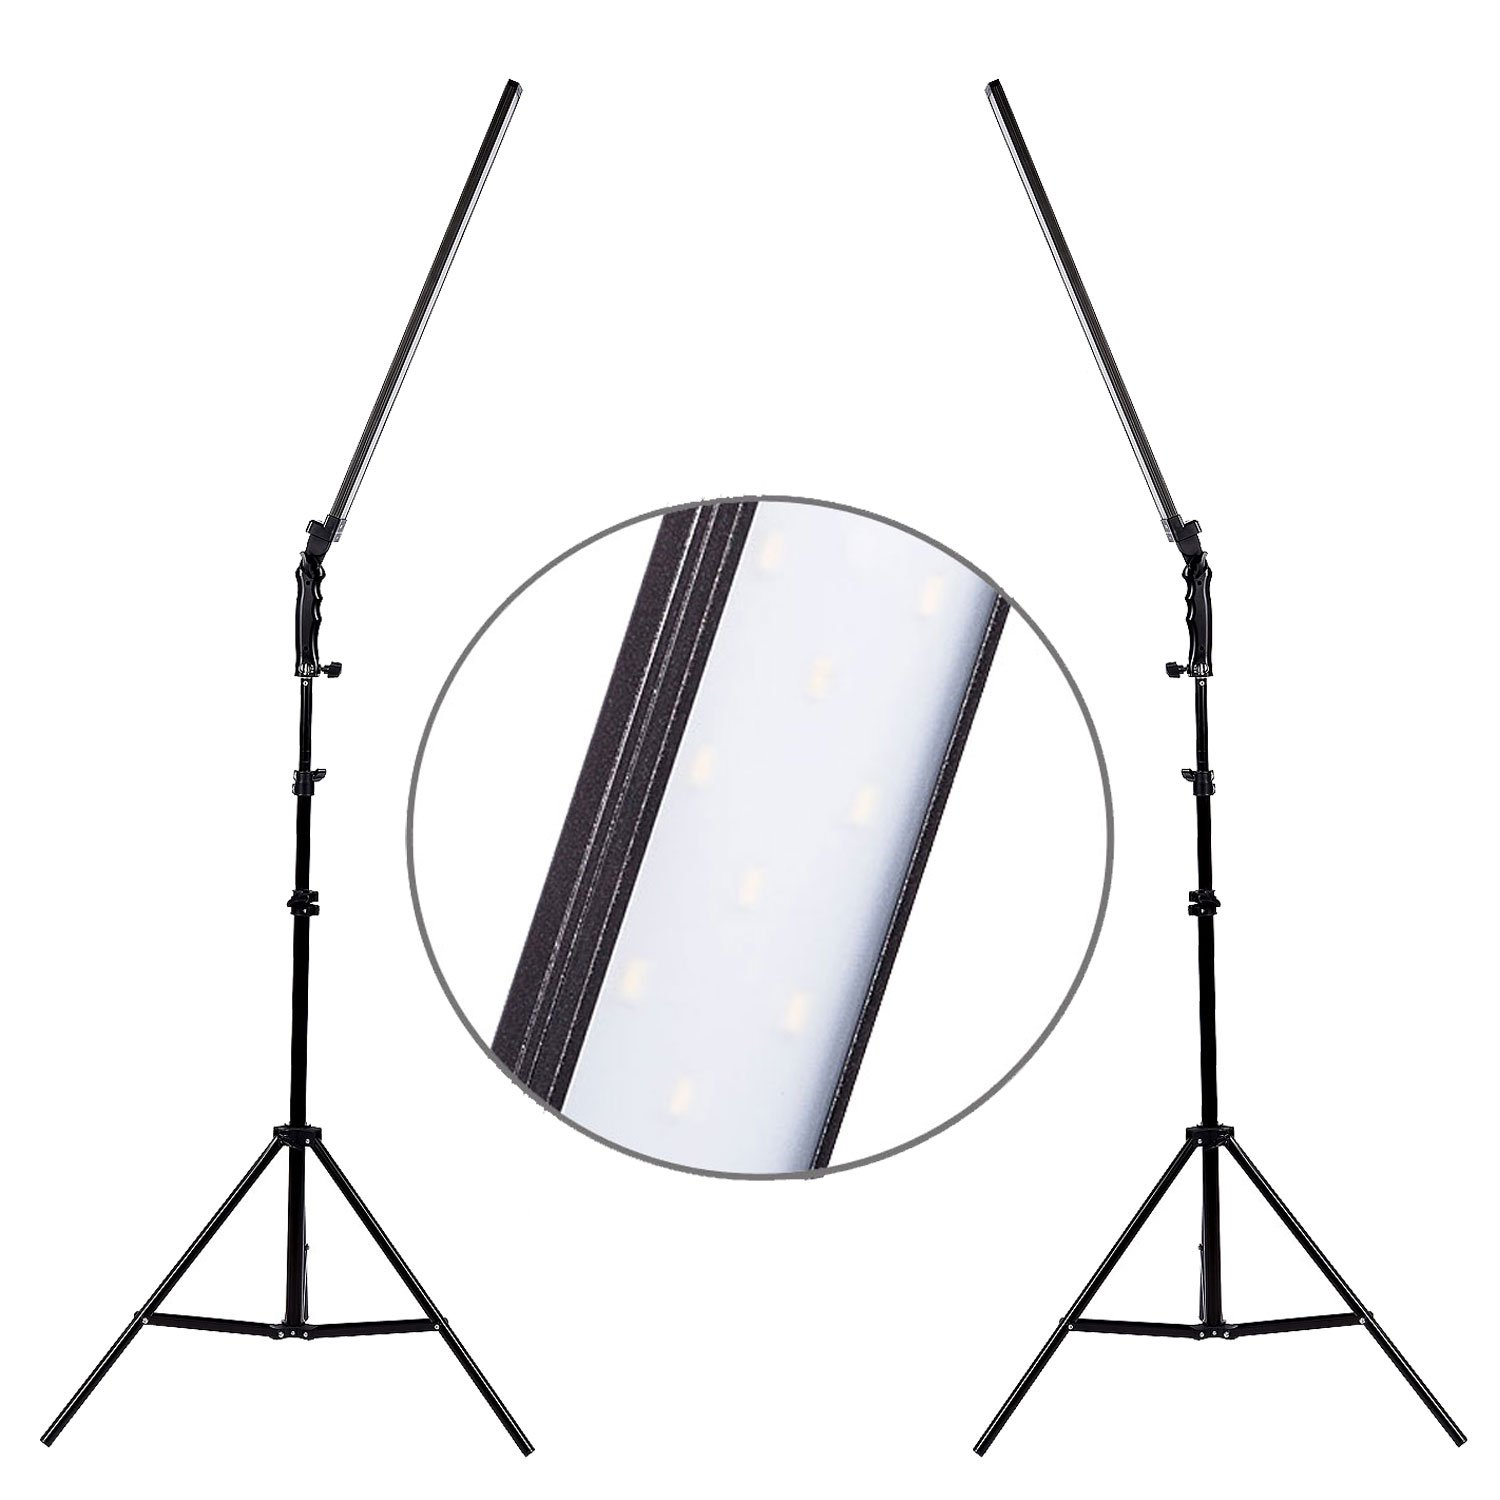 LED 30W Photo Studio Video Dimmable Lighting handheld Light Softbox 2M Stand